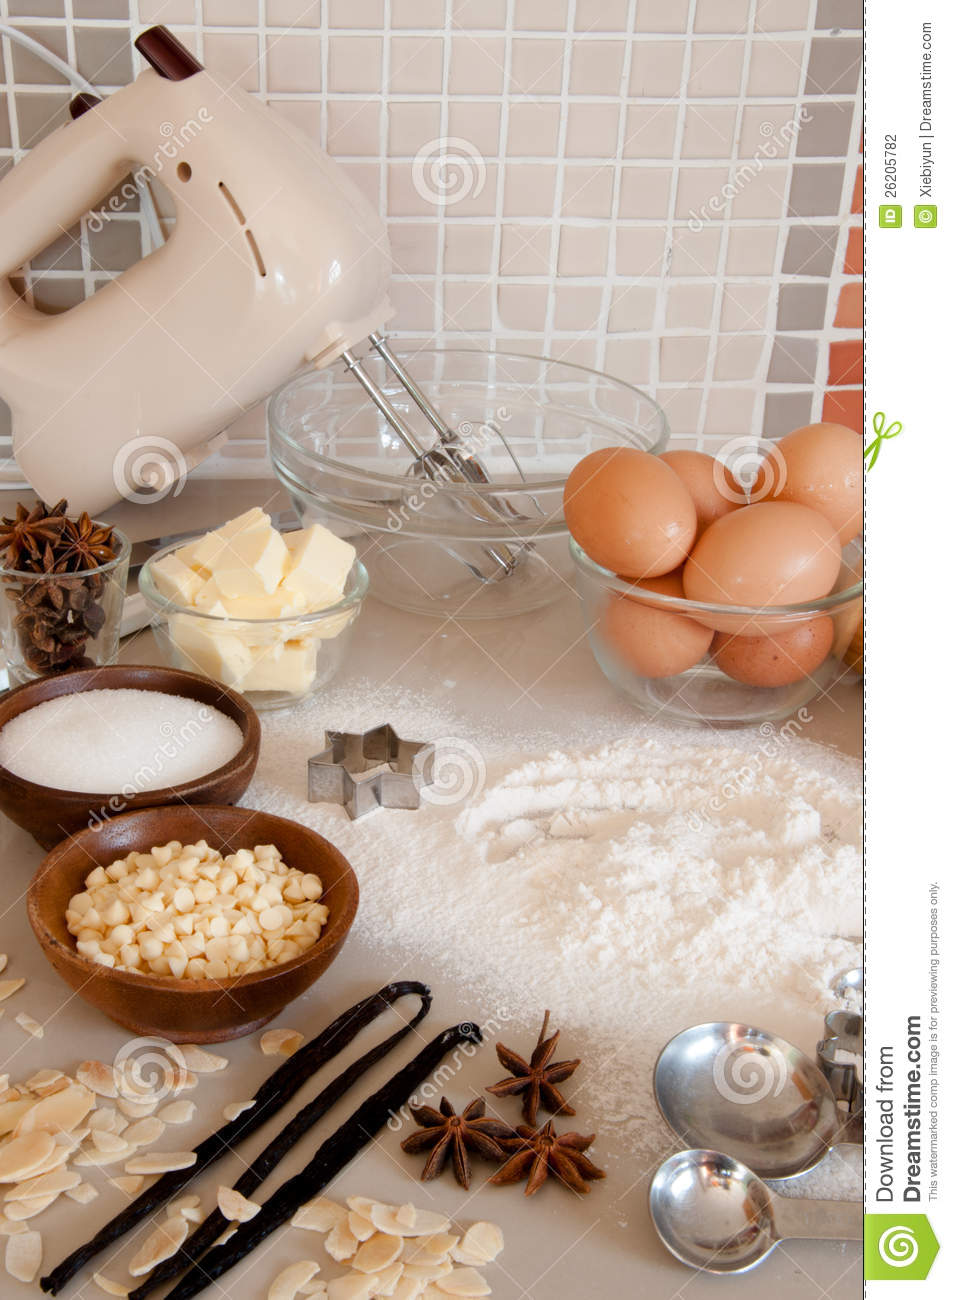 Baking Ingredients With Utensils Stock Photo Image Of